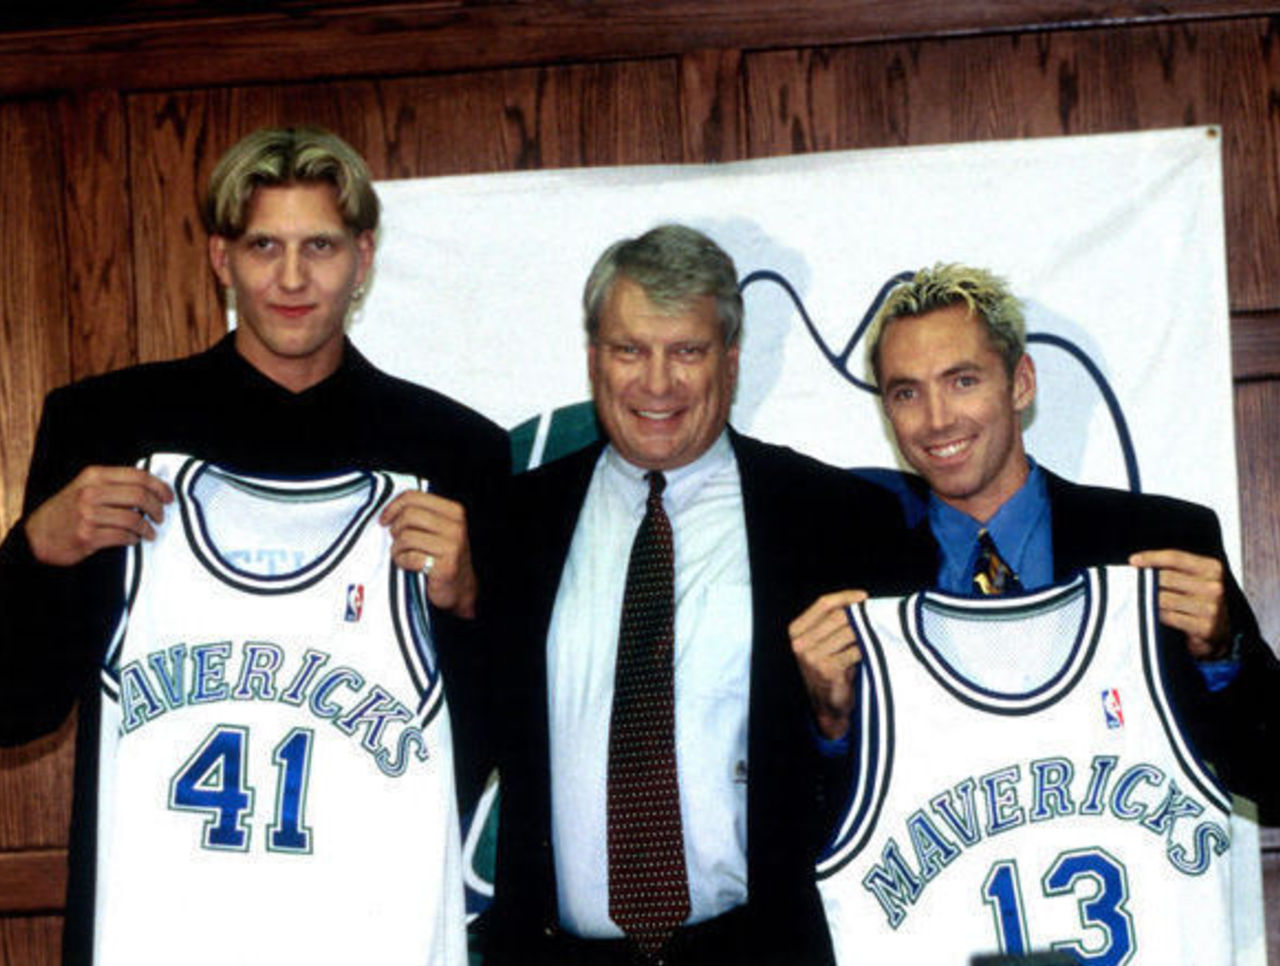 cropped_frosted-tips-steve-nash-dirk.jpg?ts=1426976968